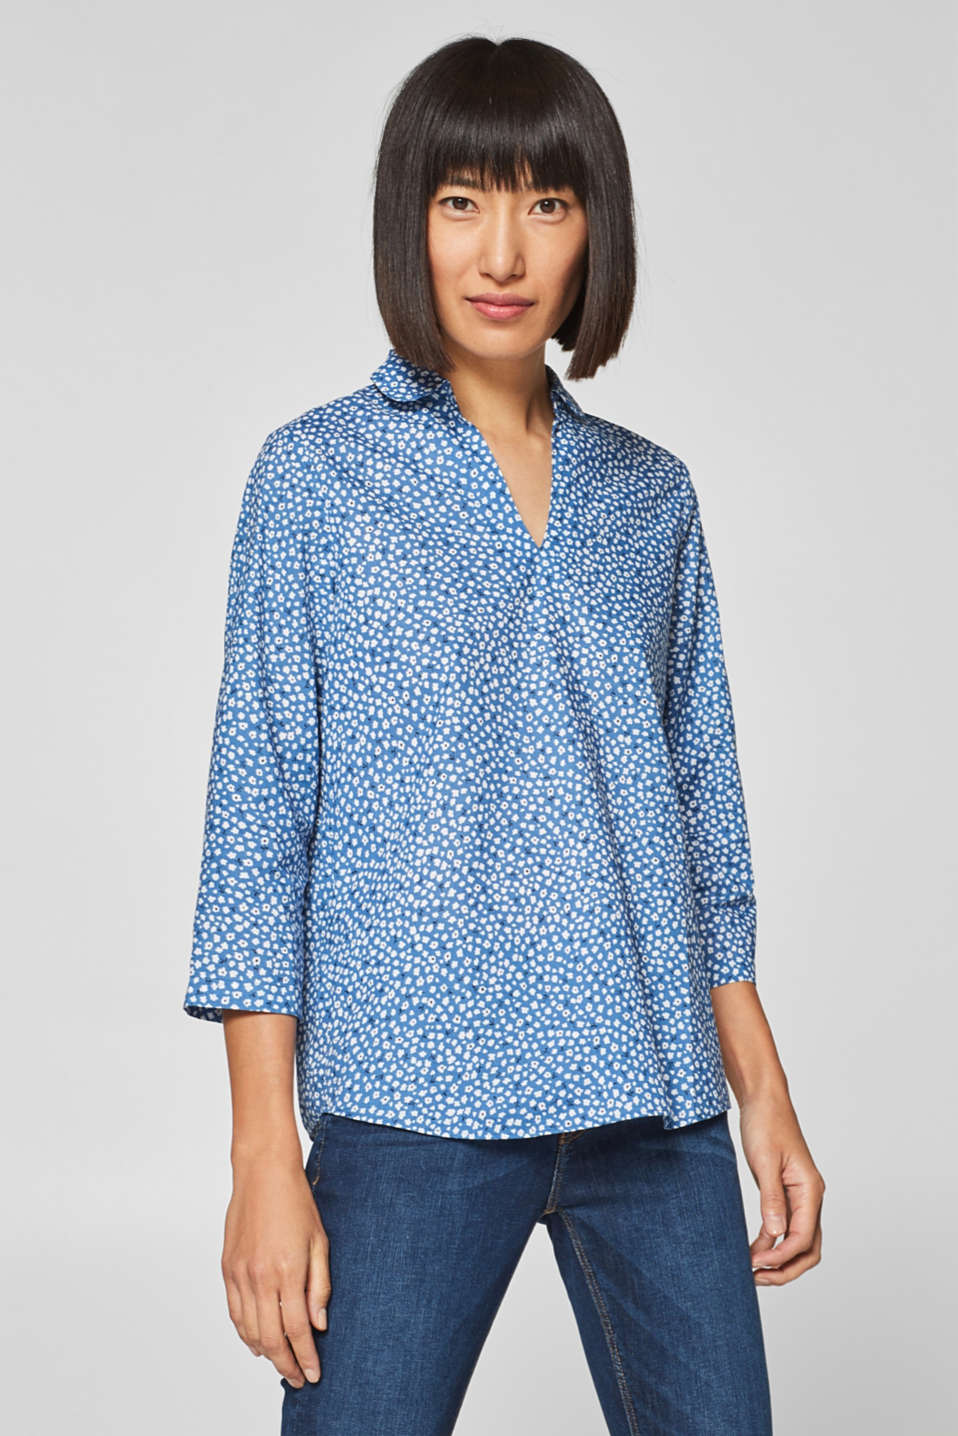 edc - Blouse with a floral print, 100% cotton